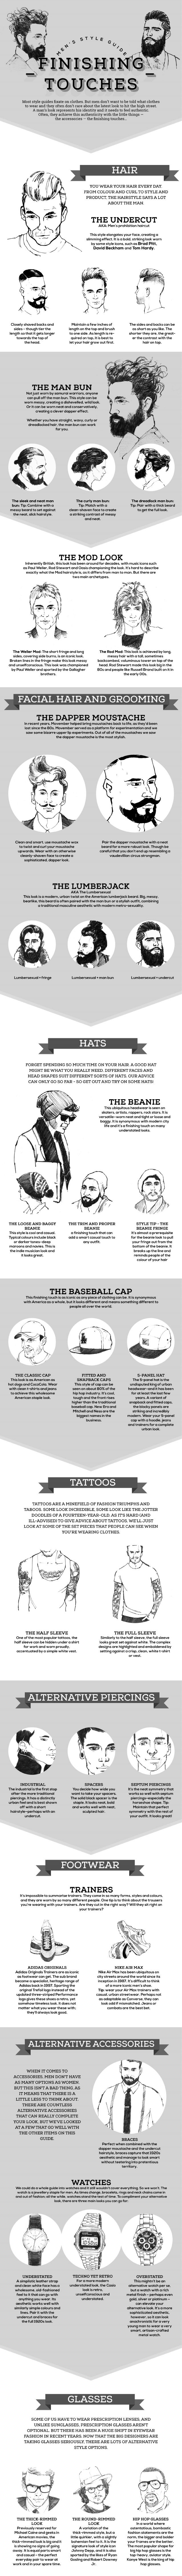 Men's Style Guide Finishing Touches #infographic #Fashion #Lifestyle